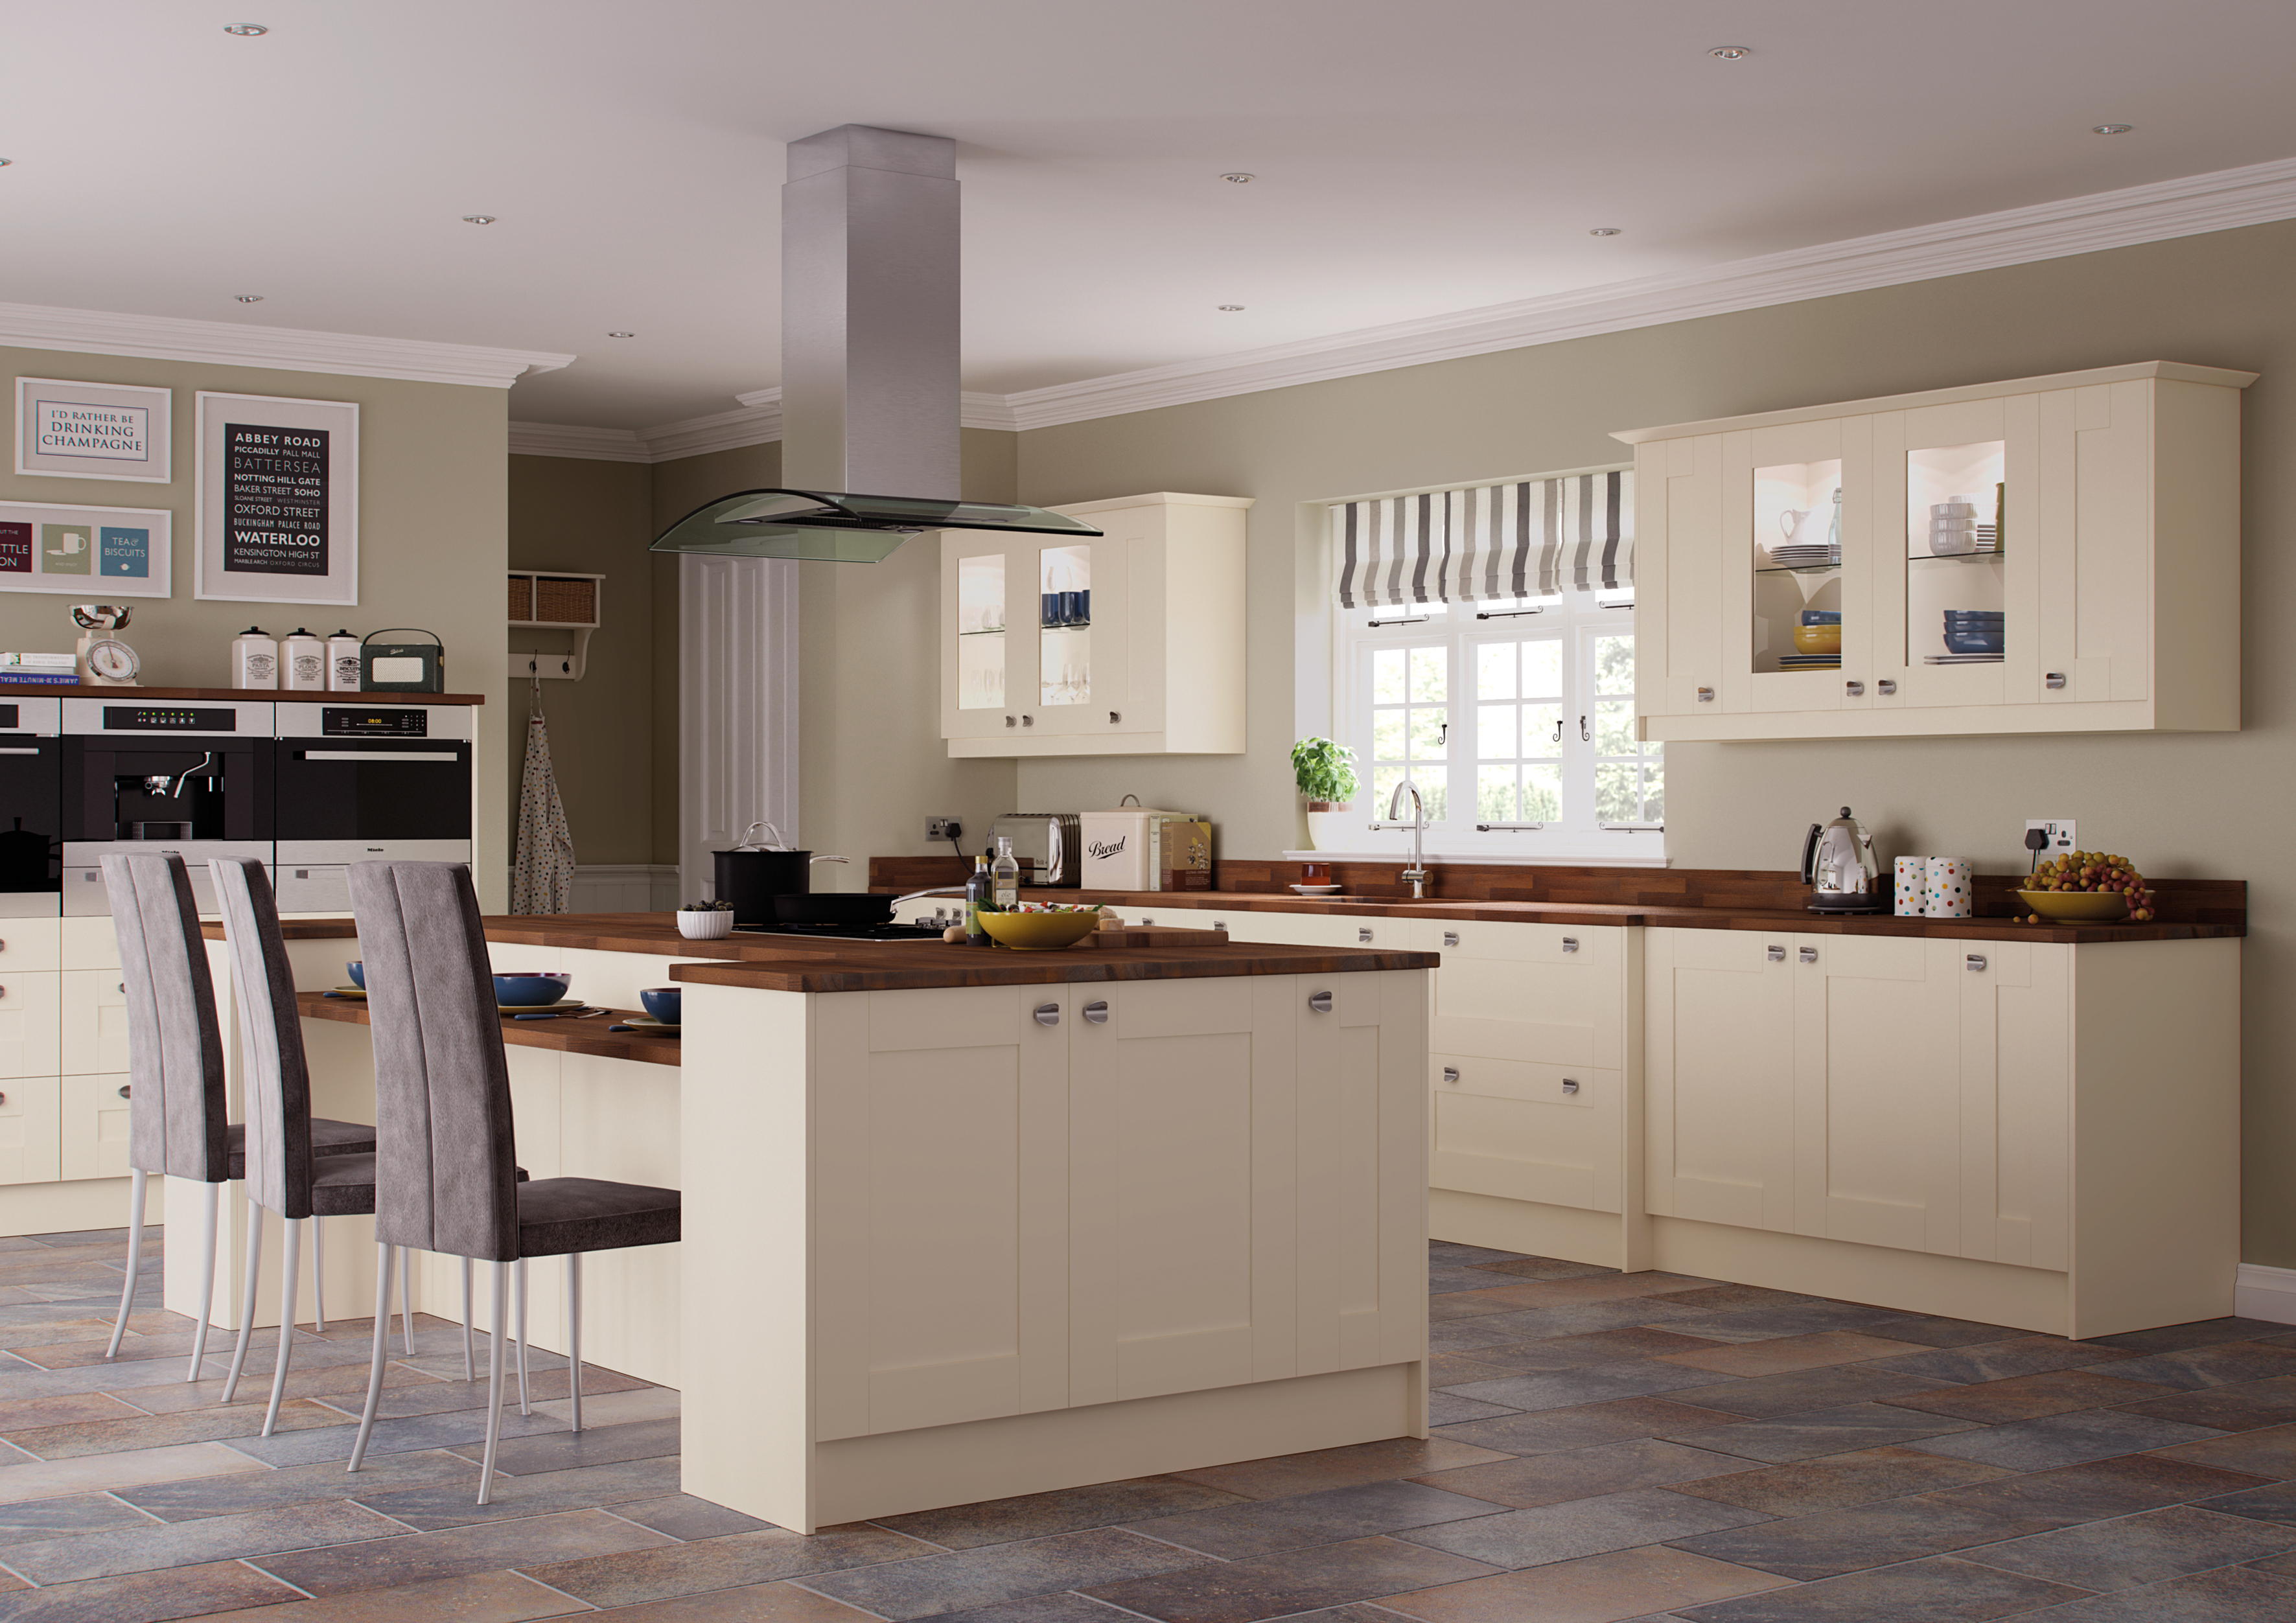 Kitchen Unit Doors For 7 Reasons To Buy Kitchen Cabinet Doors Rather Than A New Kitchen